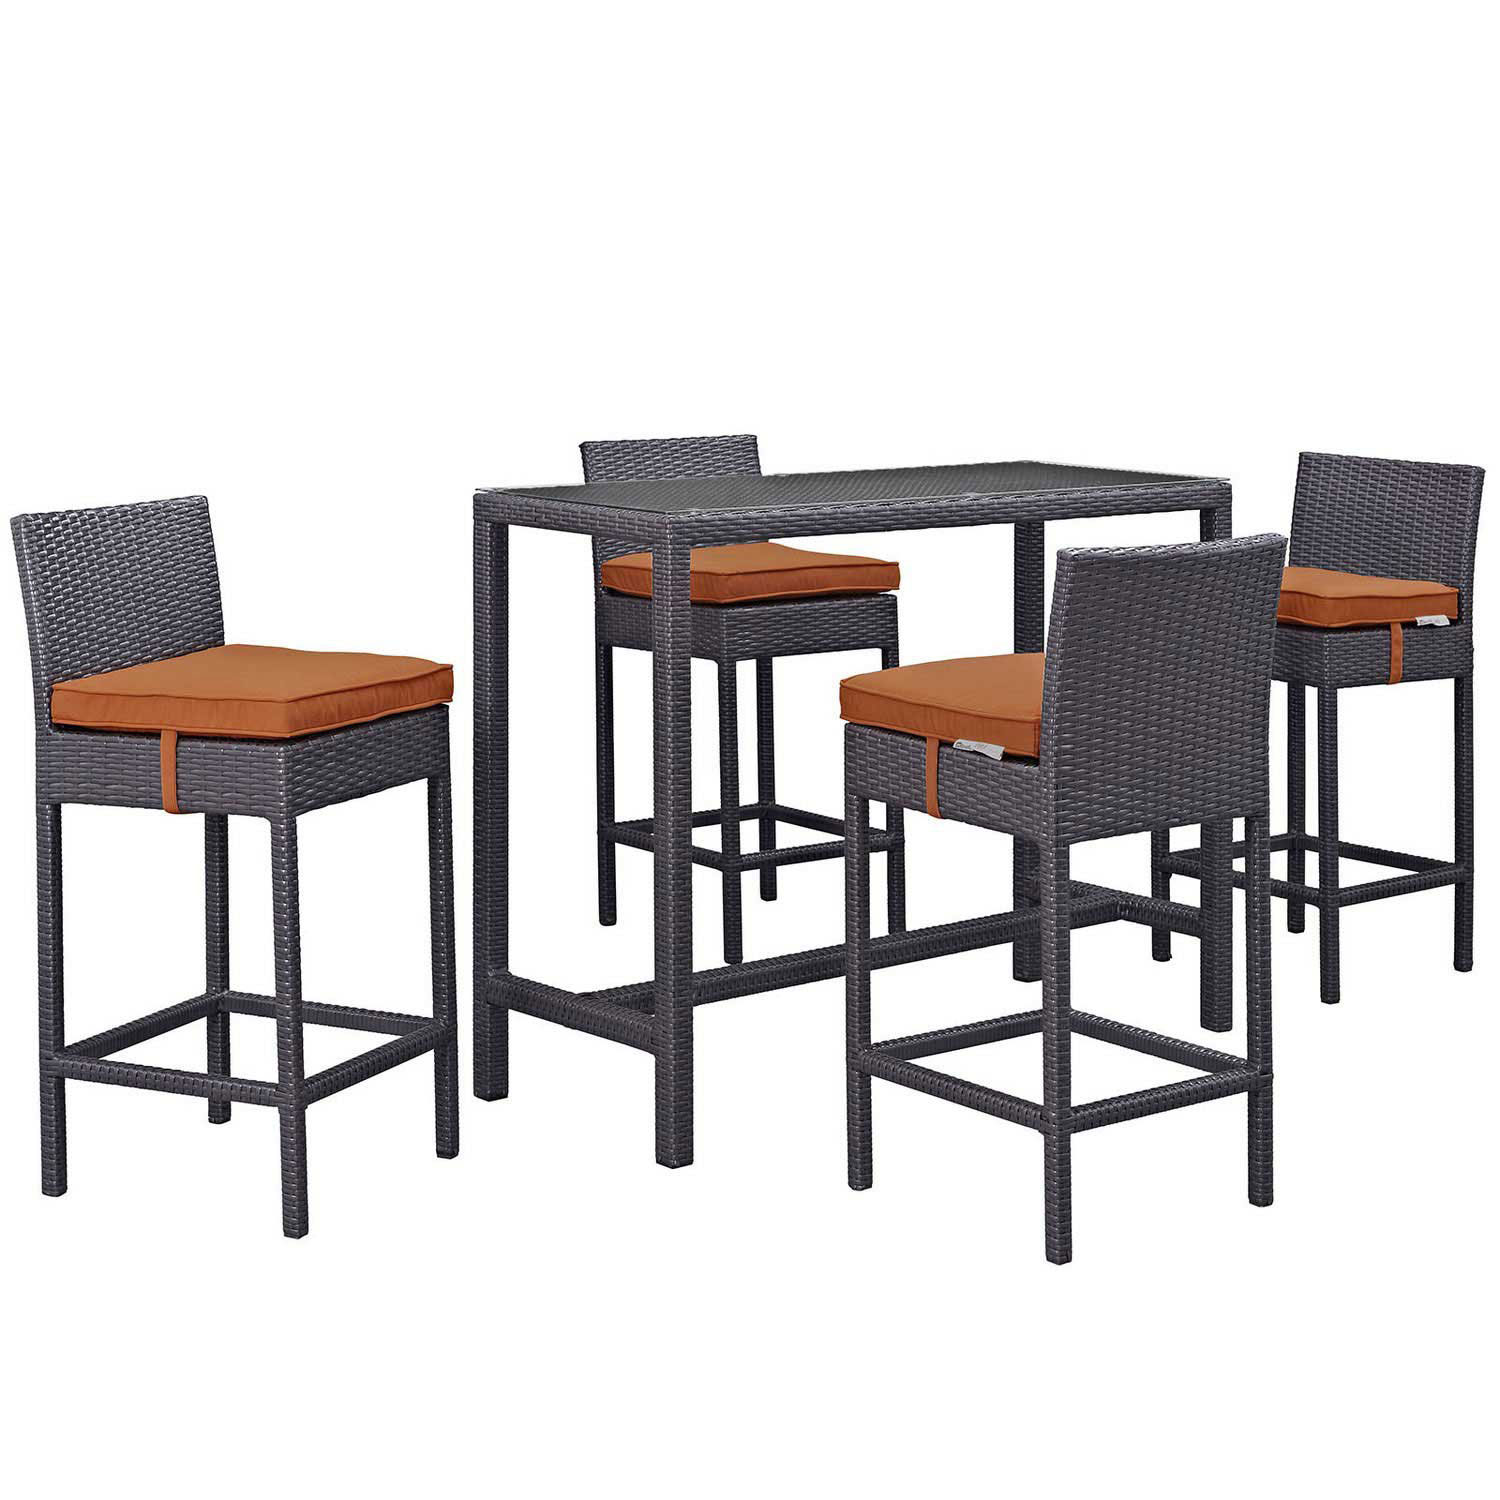 Modway Convene 5 Piece Outdoor Patio Pub Set - Espresso Orange